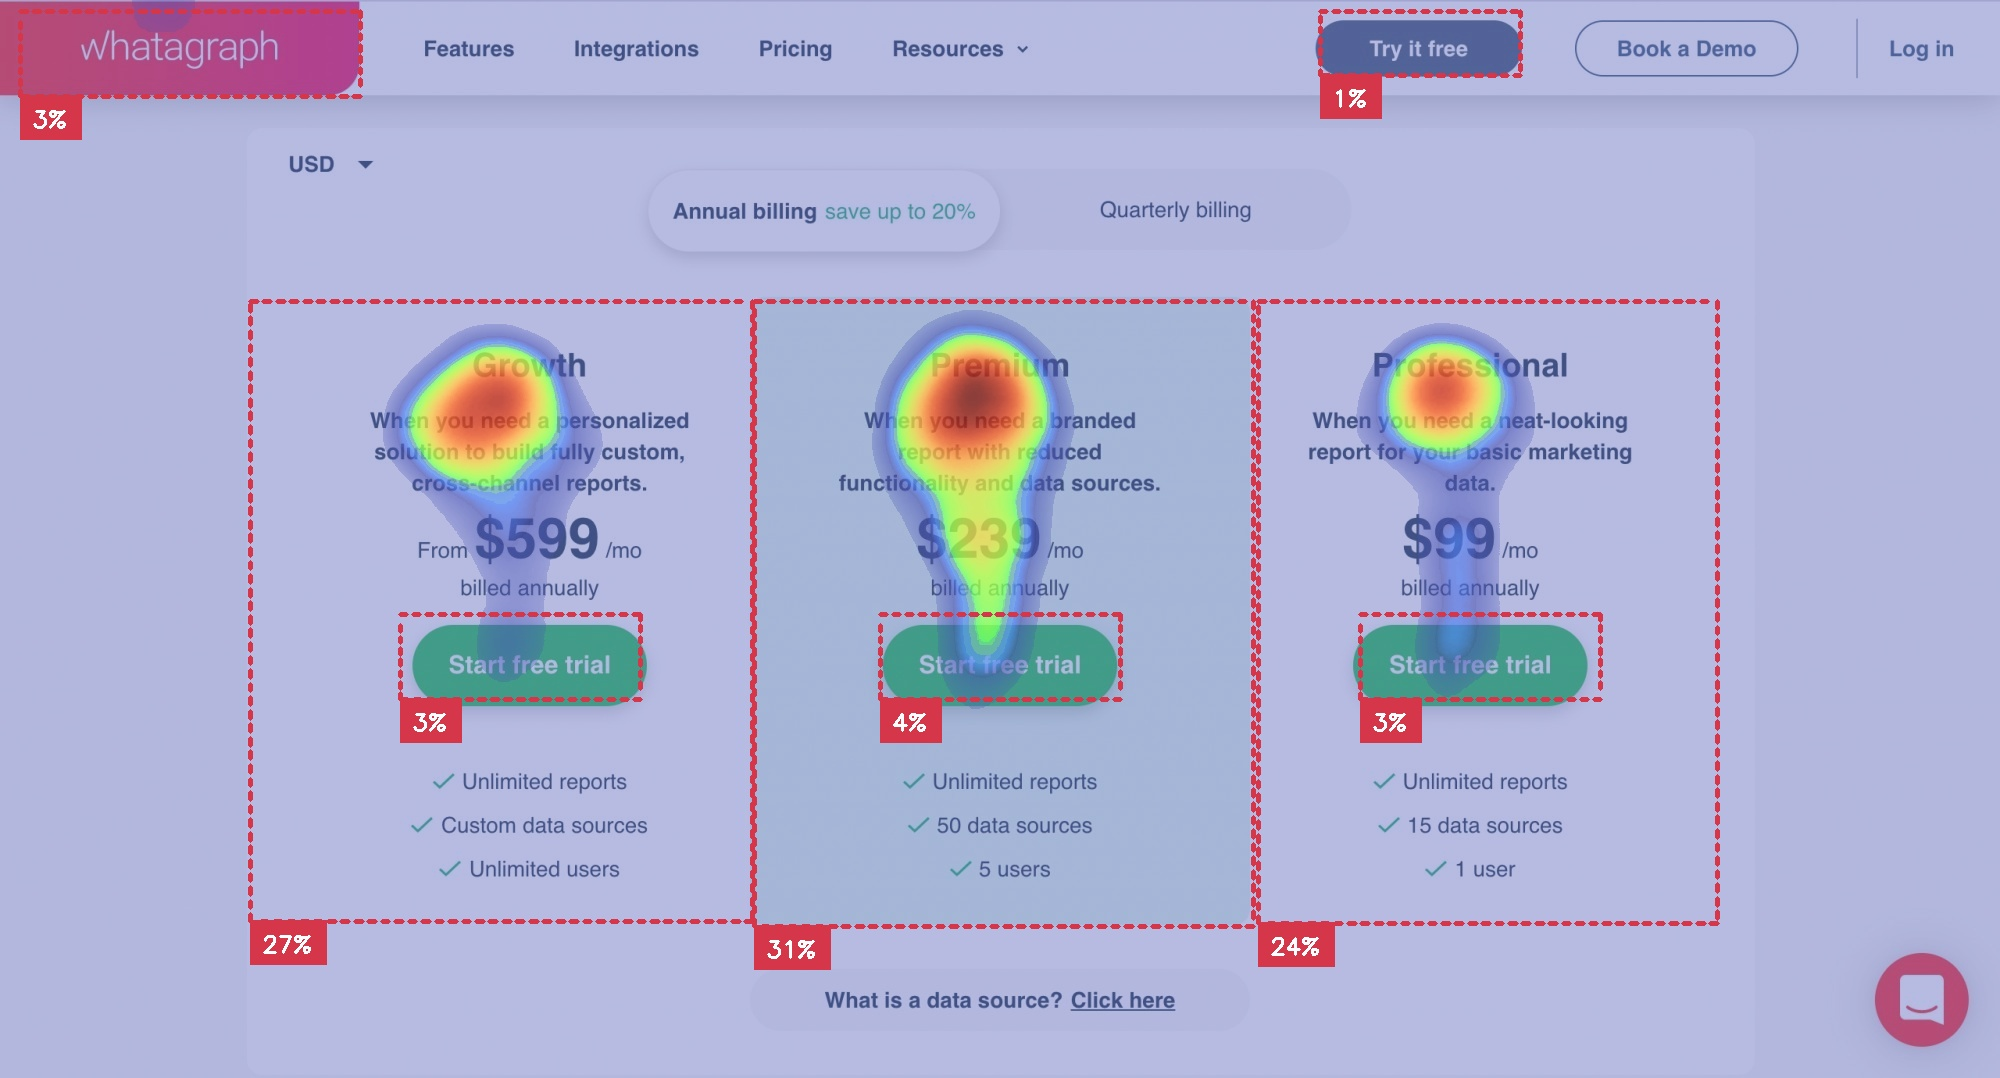 heatmap of Whatagraph pricing page radial balance